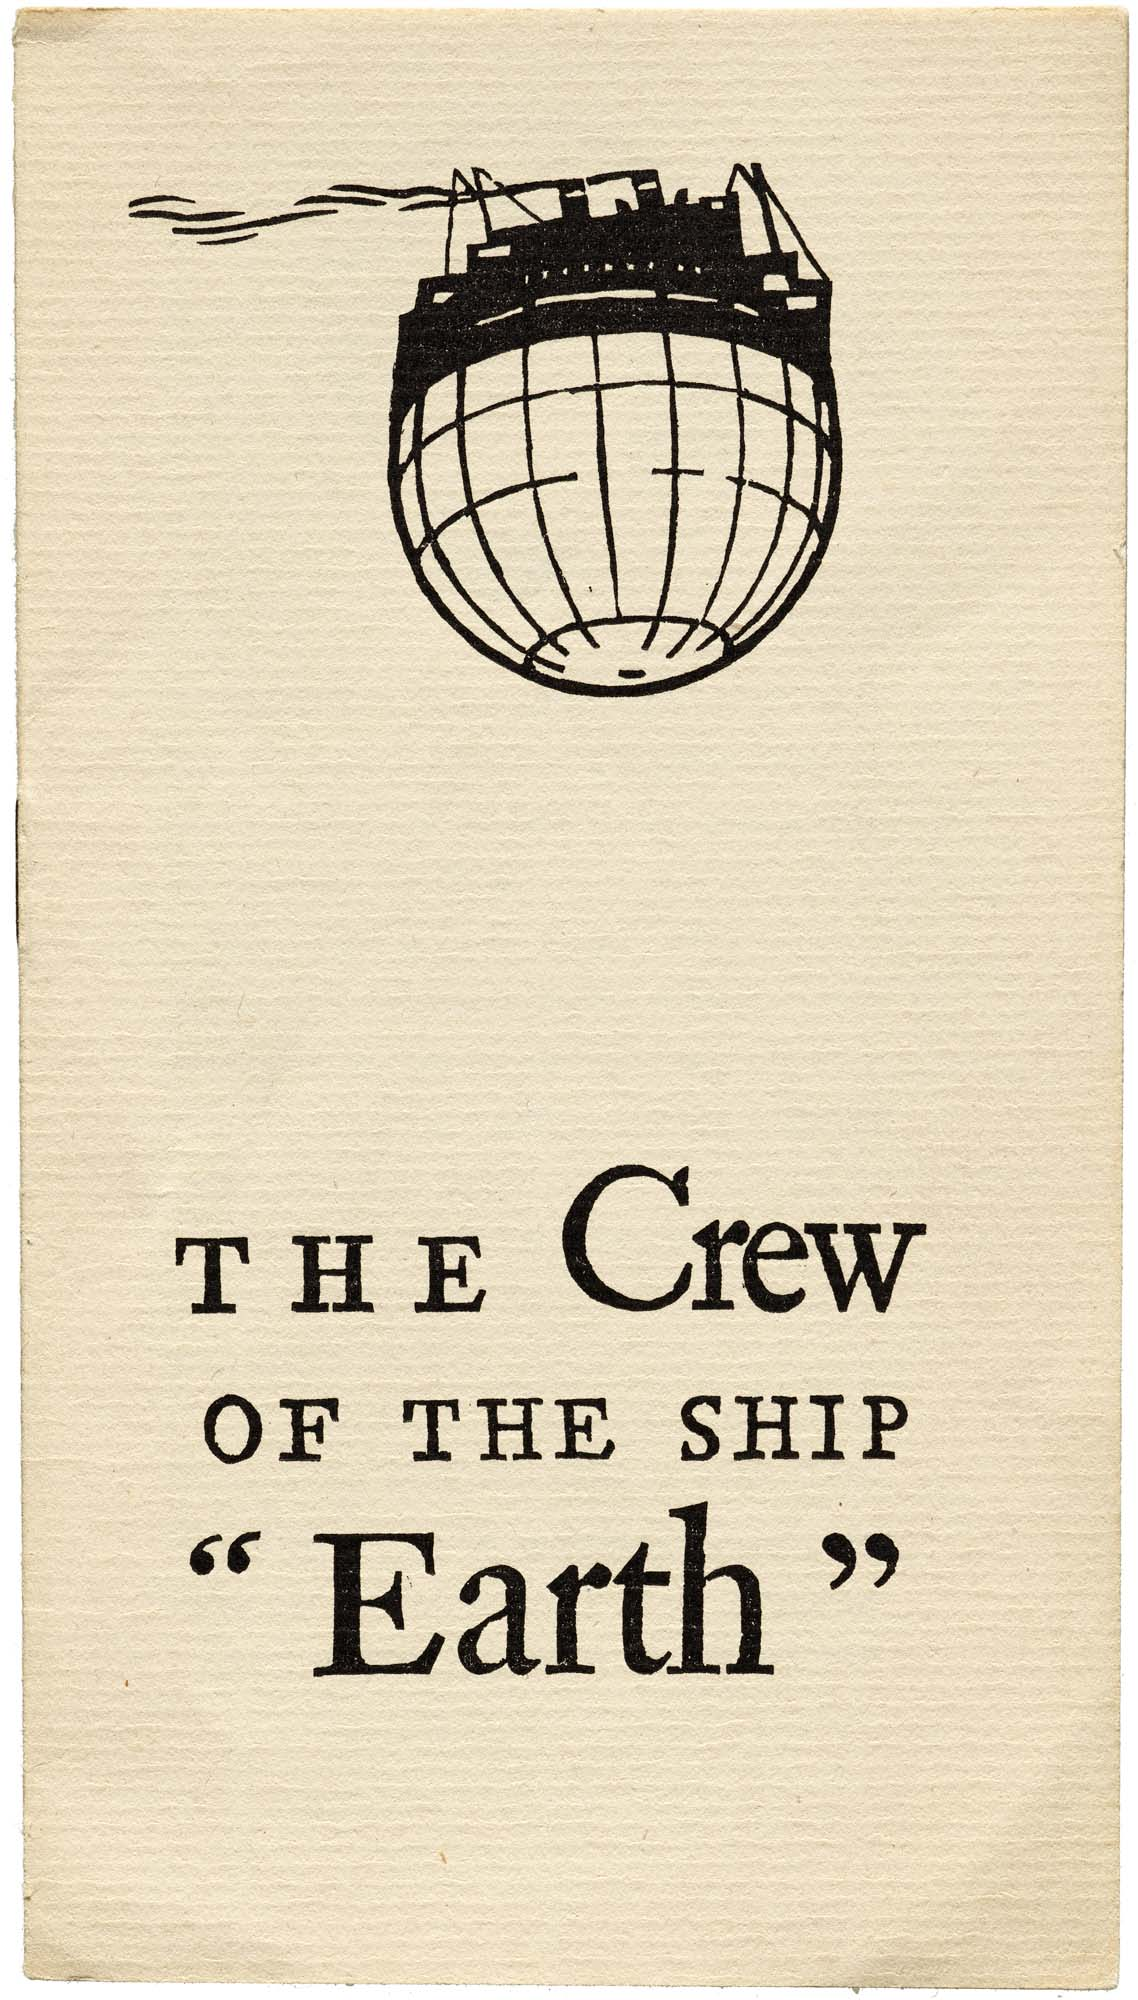 W. A. Dwiggins, Good Ship Earth, Typophiles, NY, 1943 - cover